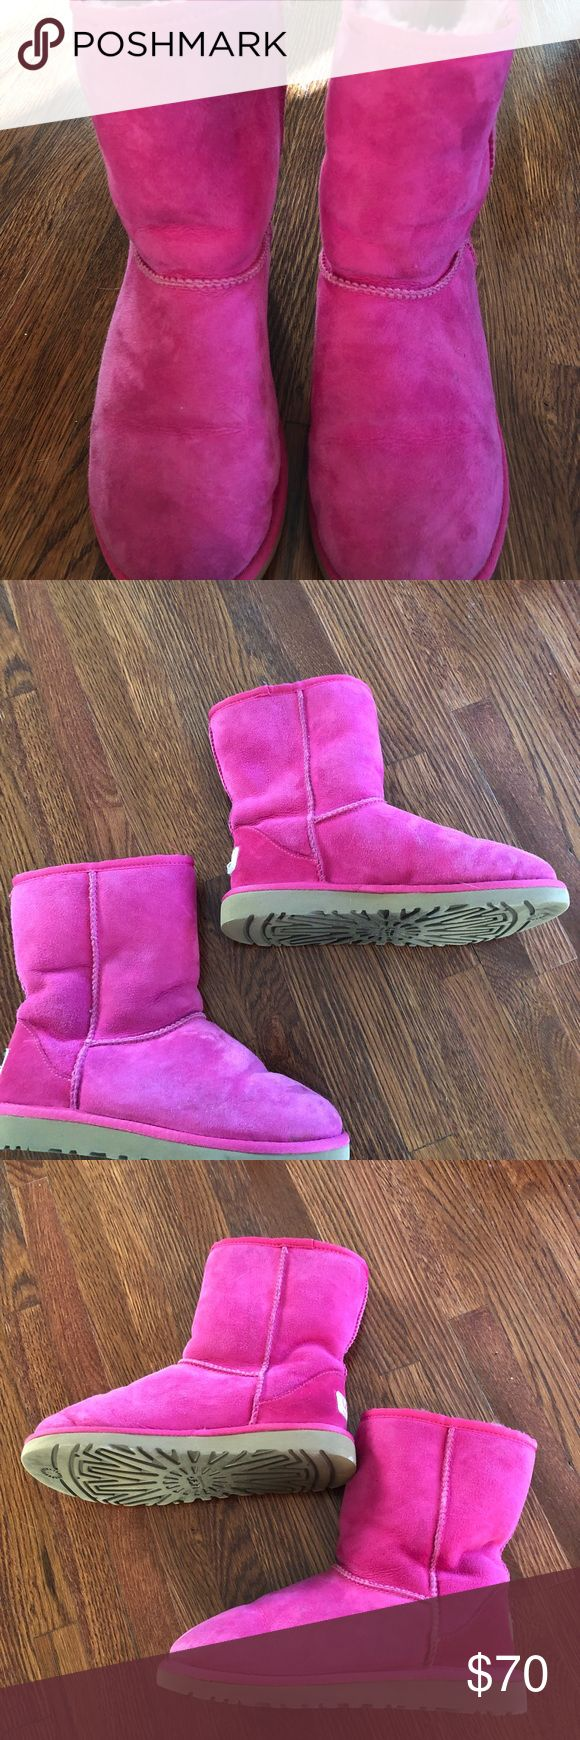 UGG Classic Short Kids in Magenta Rose Kids size 4 Uggs. Light signs of wear. Fur in great condition. UGG Shoes Ankle Boots & Booties